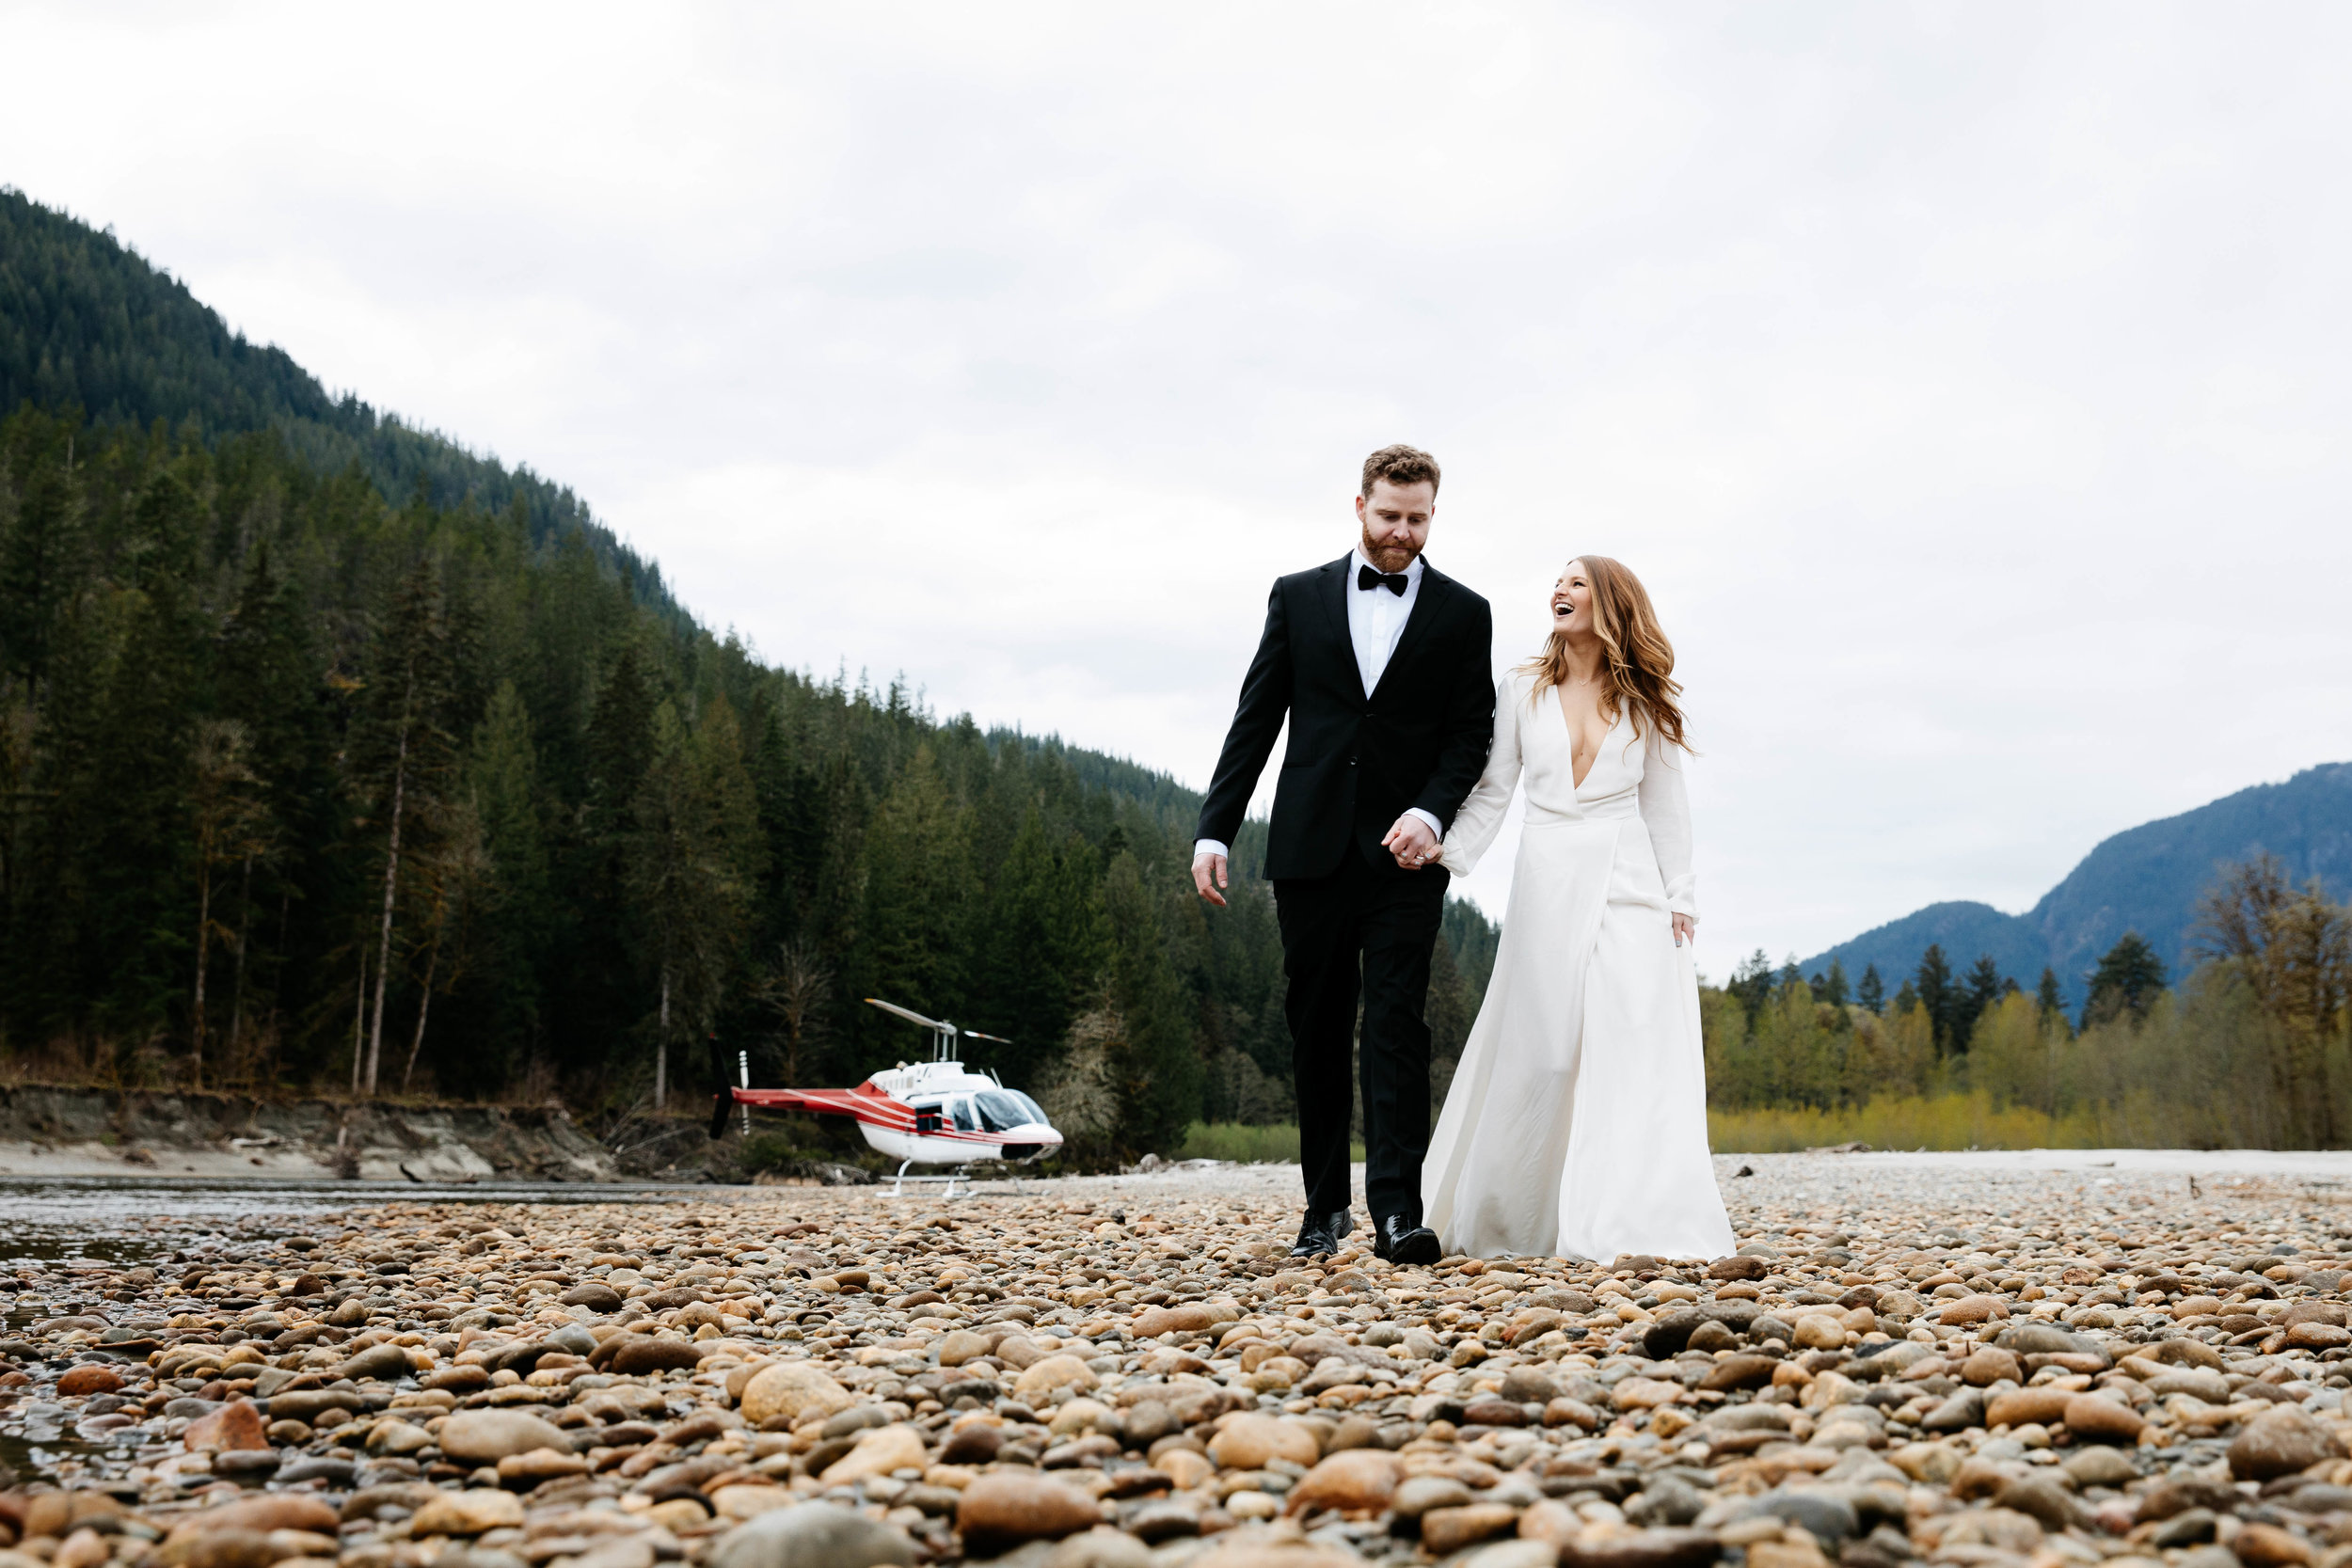 We loved this Heli Elopement so much! The fact that we were in our home town + getting dropped off on a sand bar in the middle of a remote section of the Squamish river surrounded by wilderness was simply stunning.This was perfect for Emily and Heath since they wanted their experience to be intimate and save the celebration for afterwards with friends and family.What a perfect way to get married, super simple to plan with minimal logistics, which makes it easy to be fully present and really soak up the romantic experience of the day.We could feel it, and we're honoured to have been a part of it. -